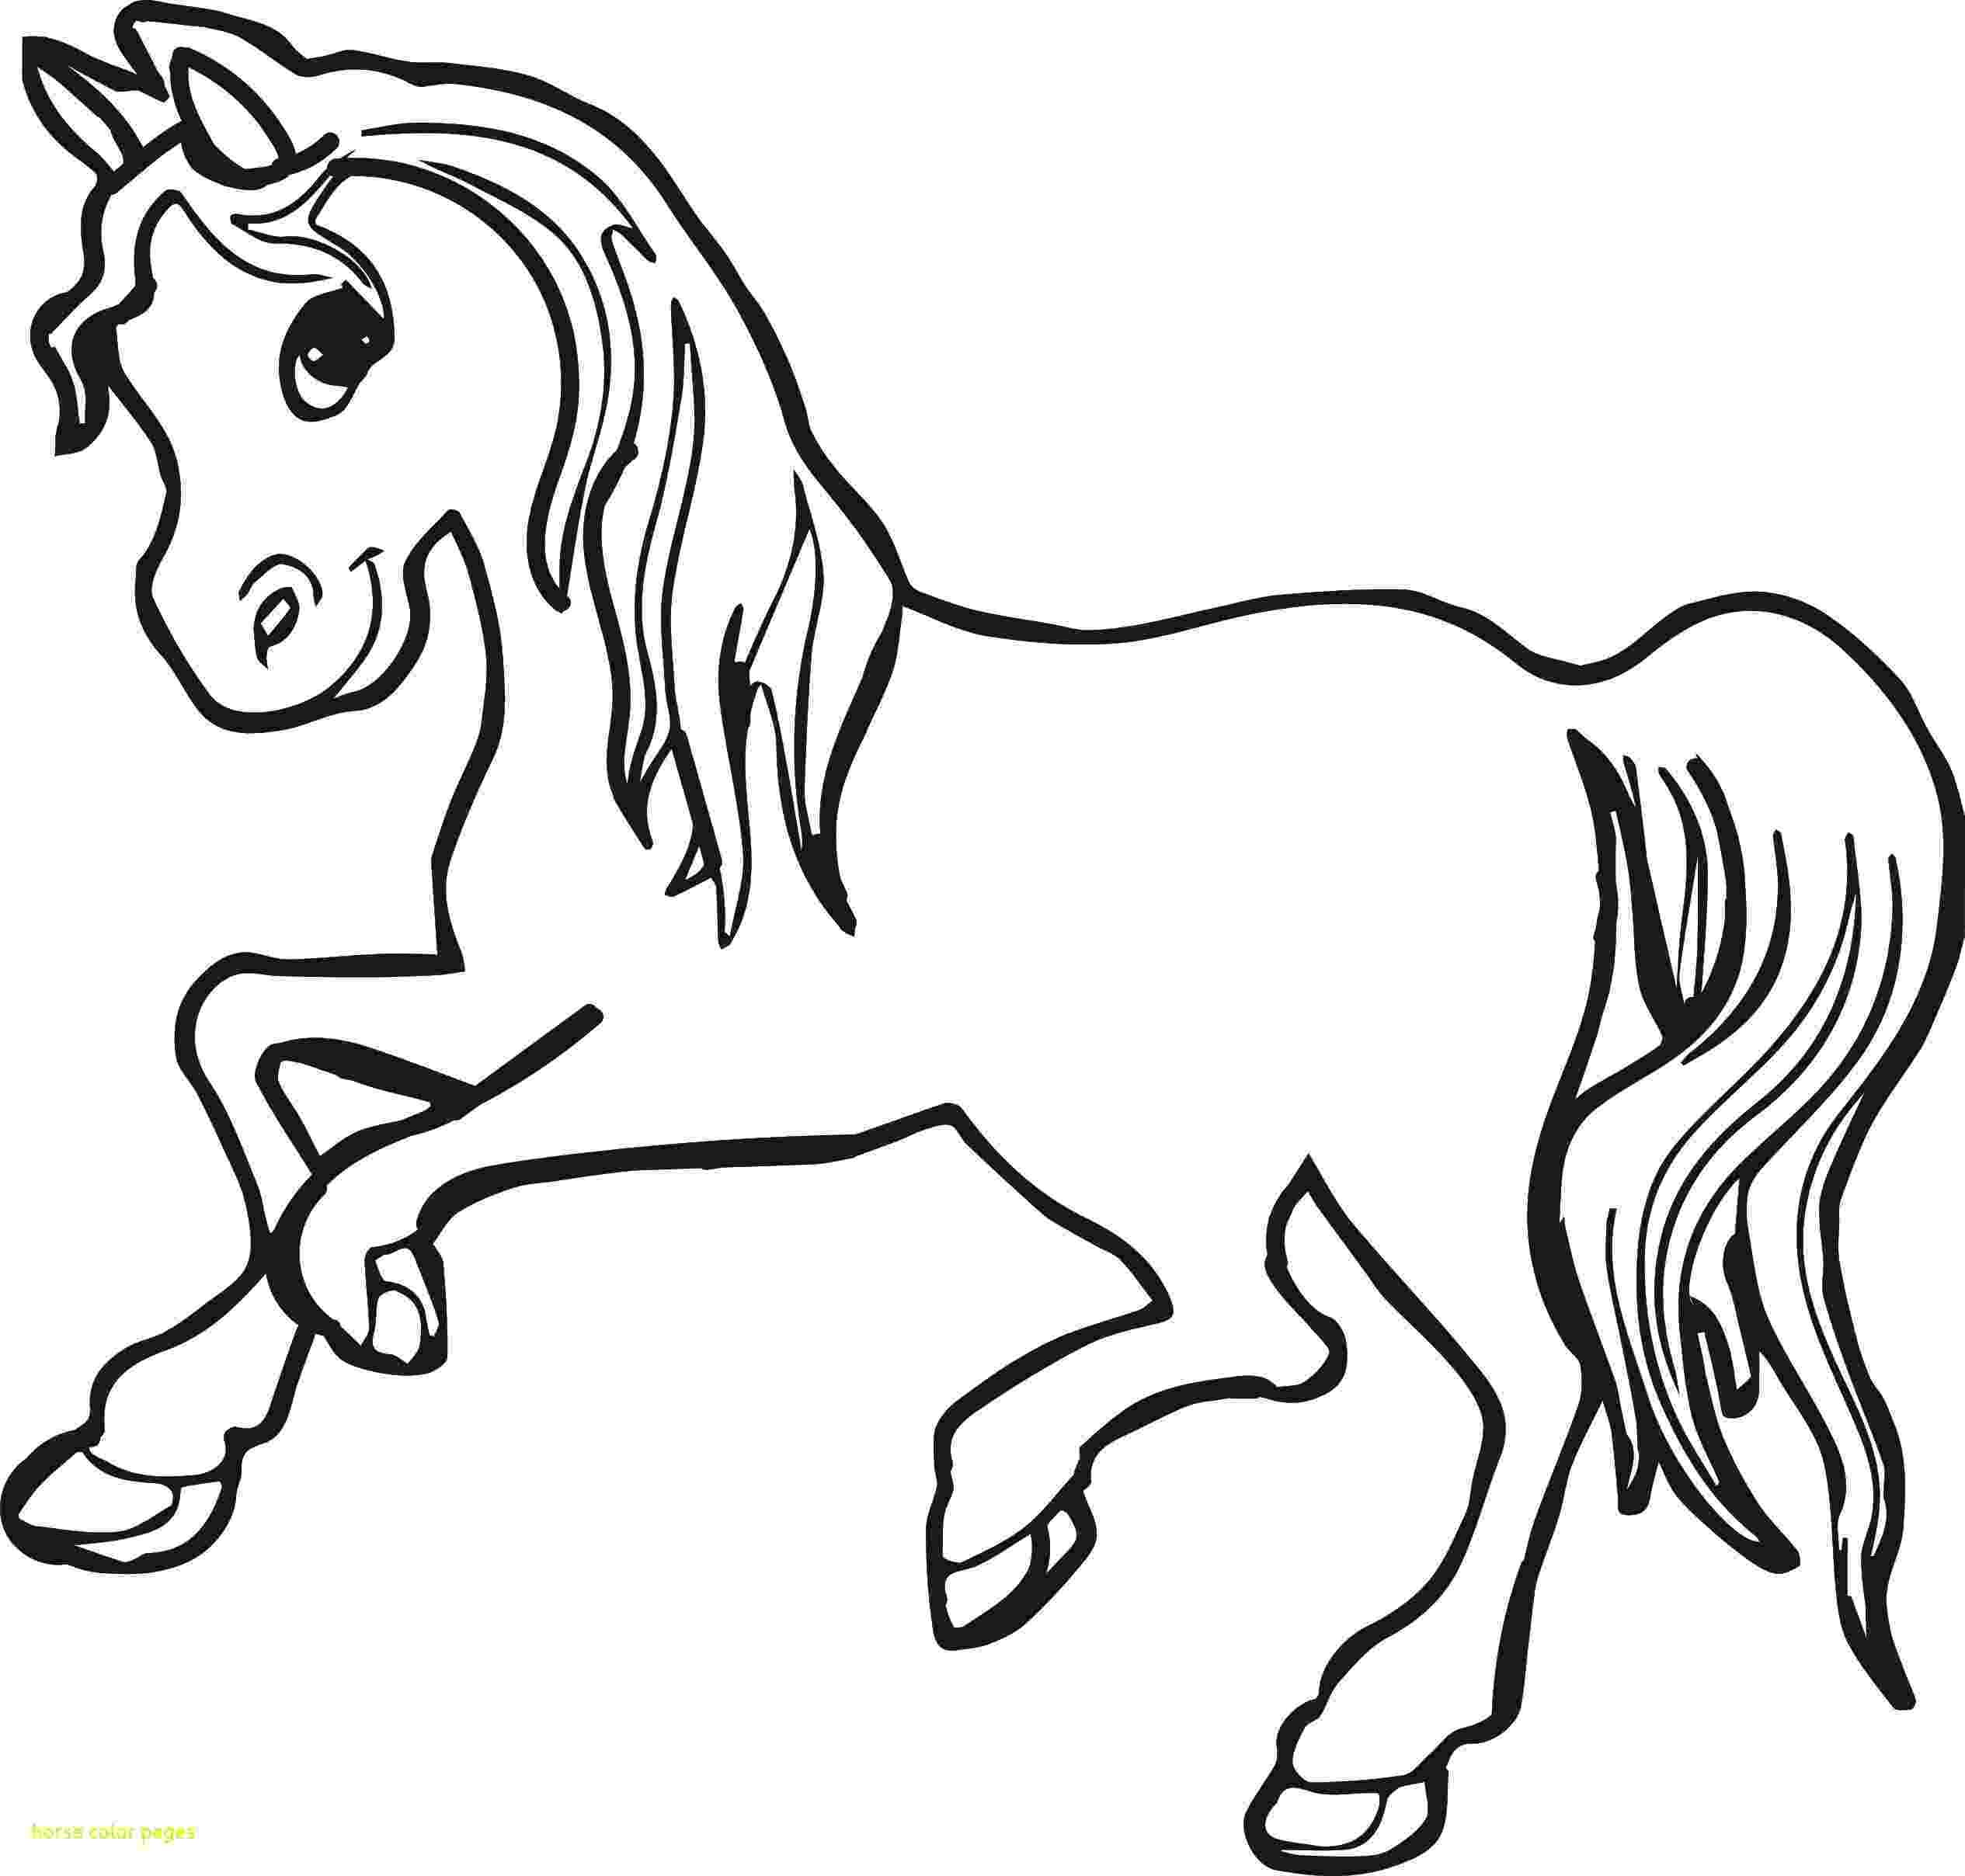 horse herd coloring pages horse herd drawings sketch coloring page pages horse herd coloring